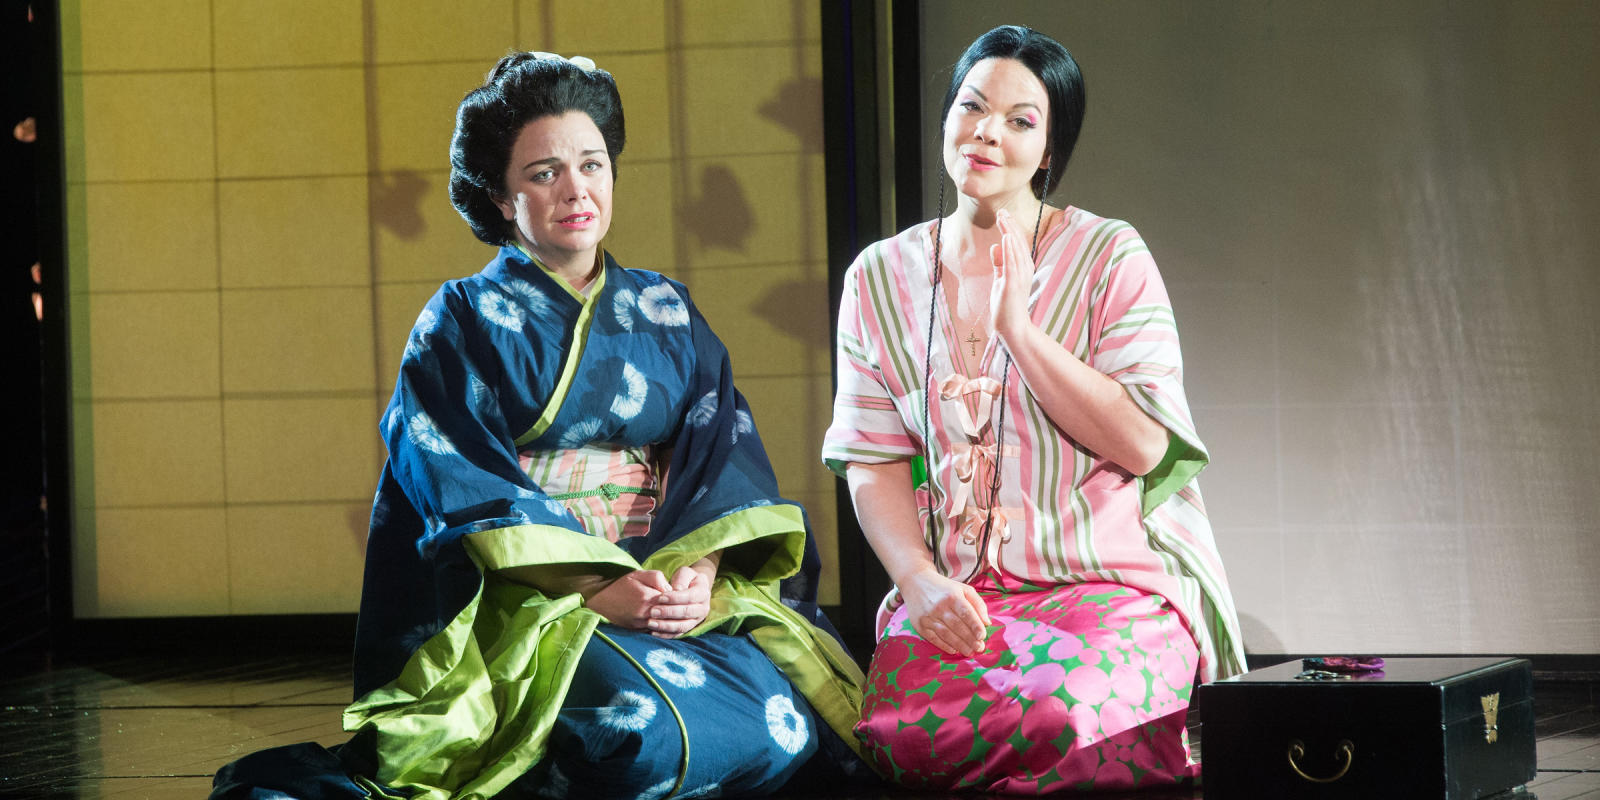 ENO Madam Butterfly Stephanie Windsor-Lewis and Rena Harms 1 (c) Tom Bowles